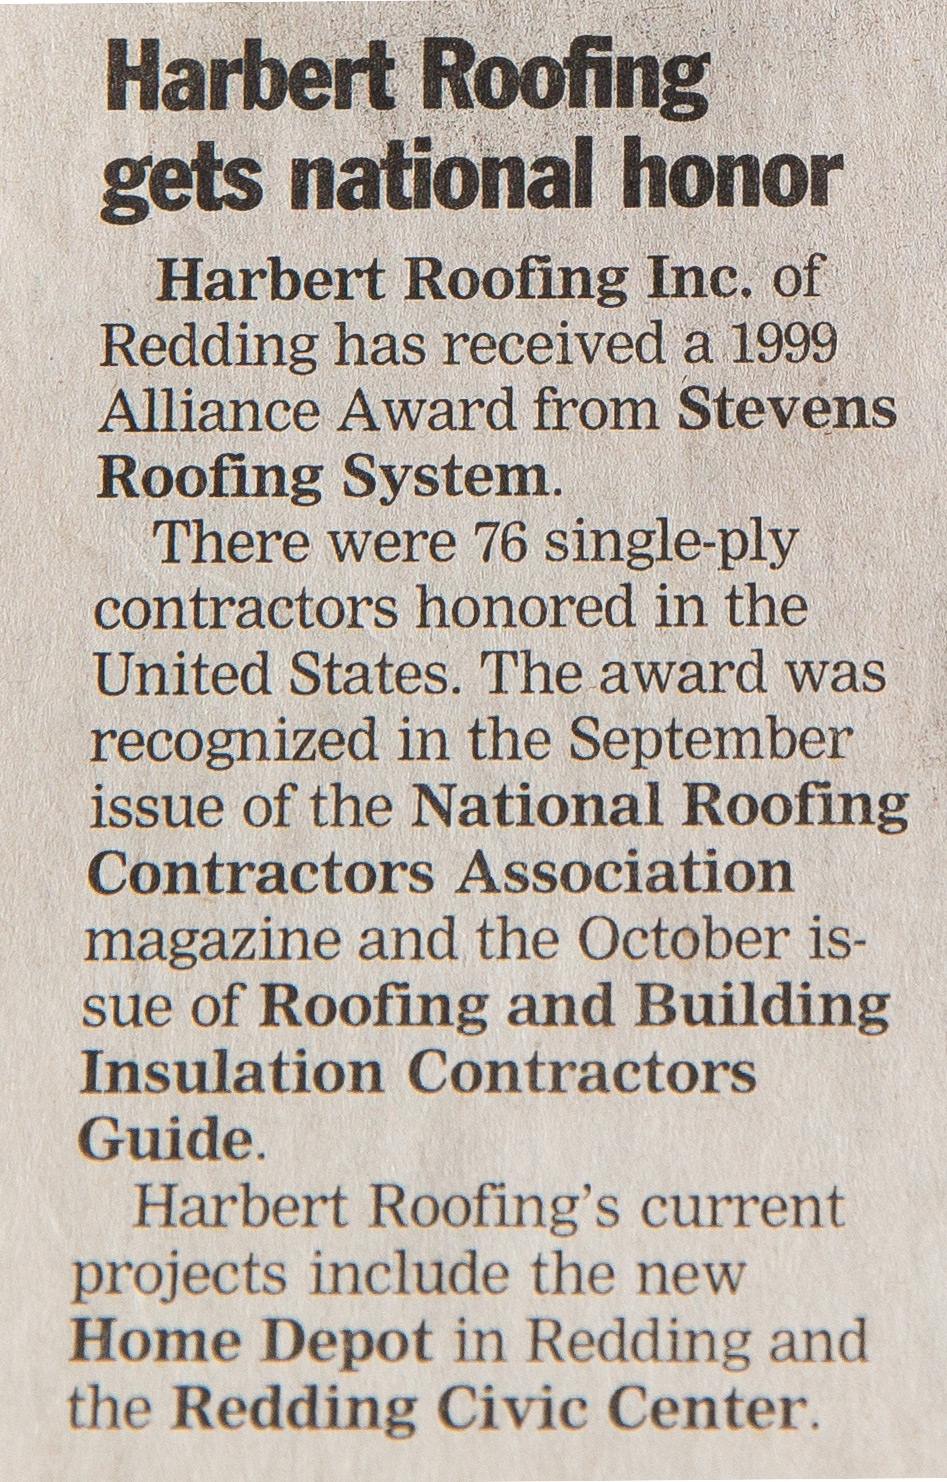 Harbert Roofing Inc. of Redding received a 1999 Alliance Award from Stevens Roofing System.  - There were 76 single-ply contractors honored in the United States. The award was recognized in the September issue of the National Roofing Contractors Association magazine and the October issue of Roofing and Building Insulation Contractors Guide.Harbert Roofing's current projects include the new Home Depot in Redding and the Redding Civic Center.Published October 28, 1999